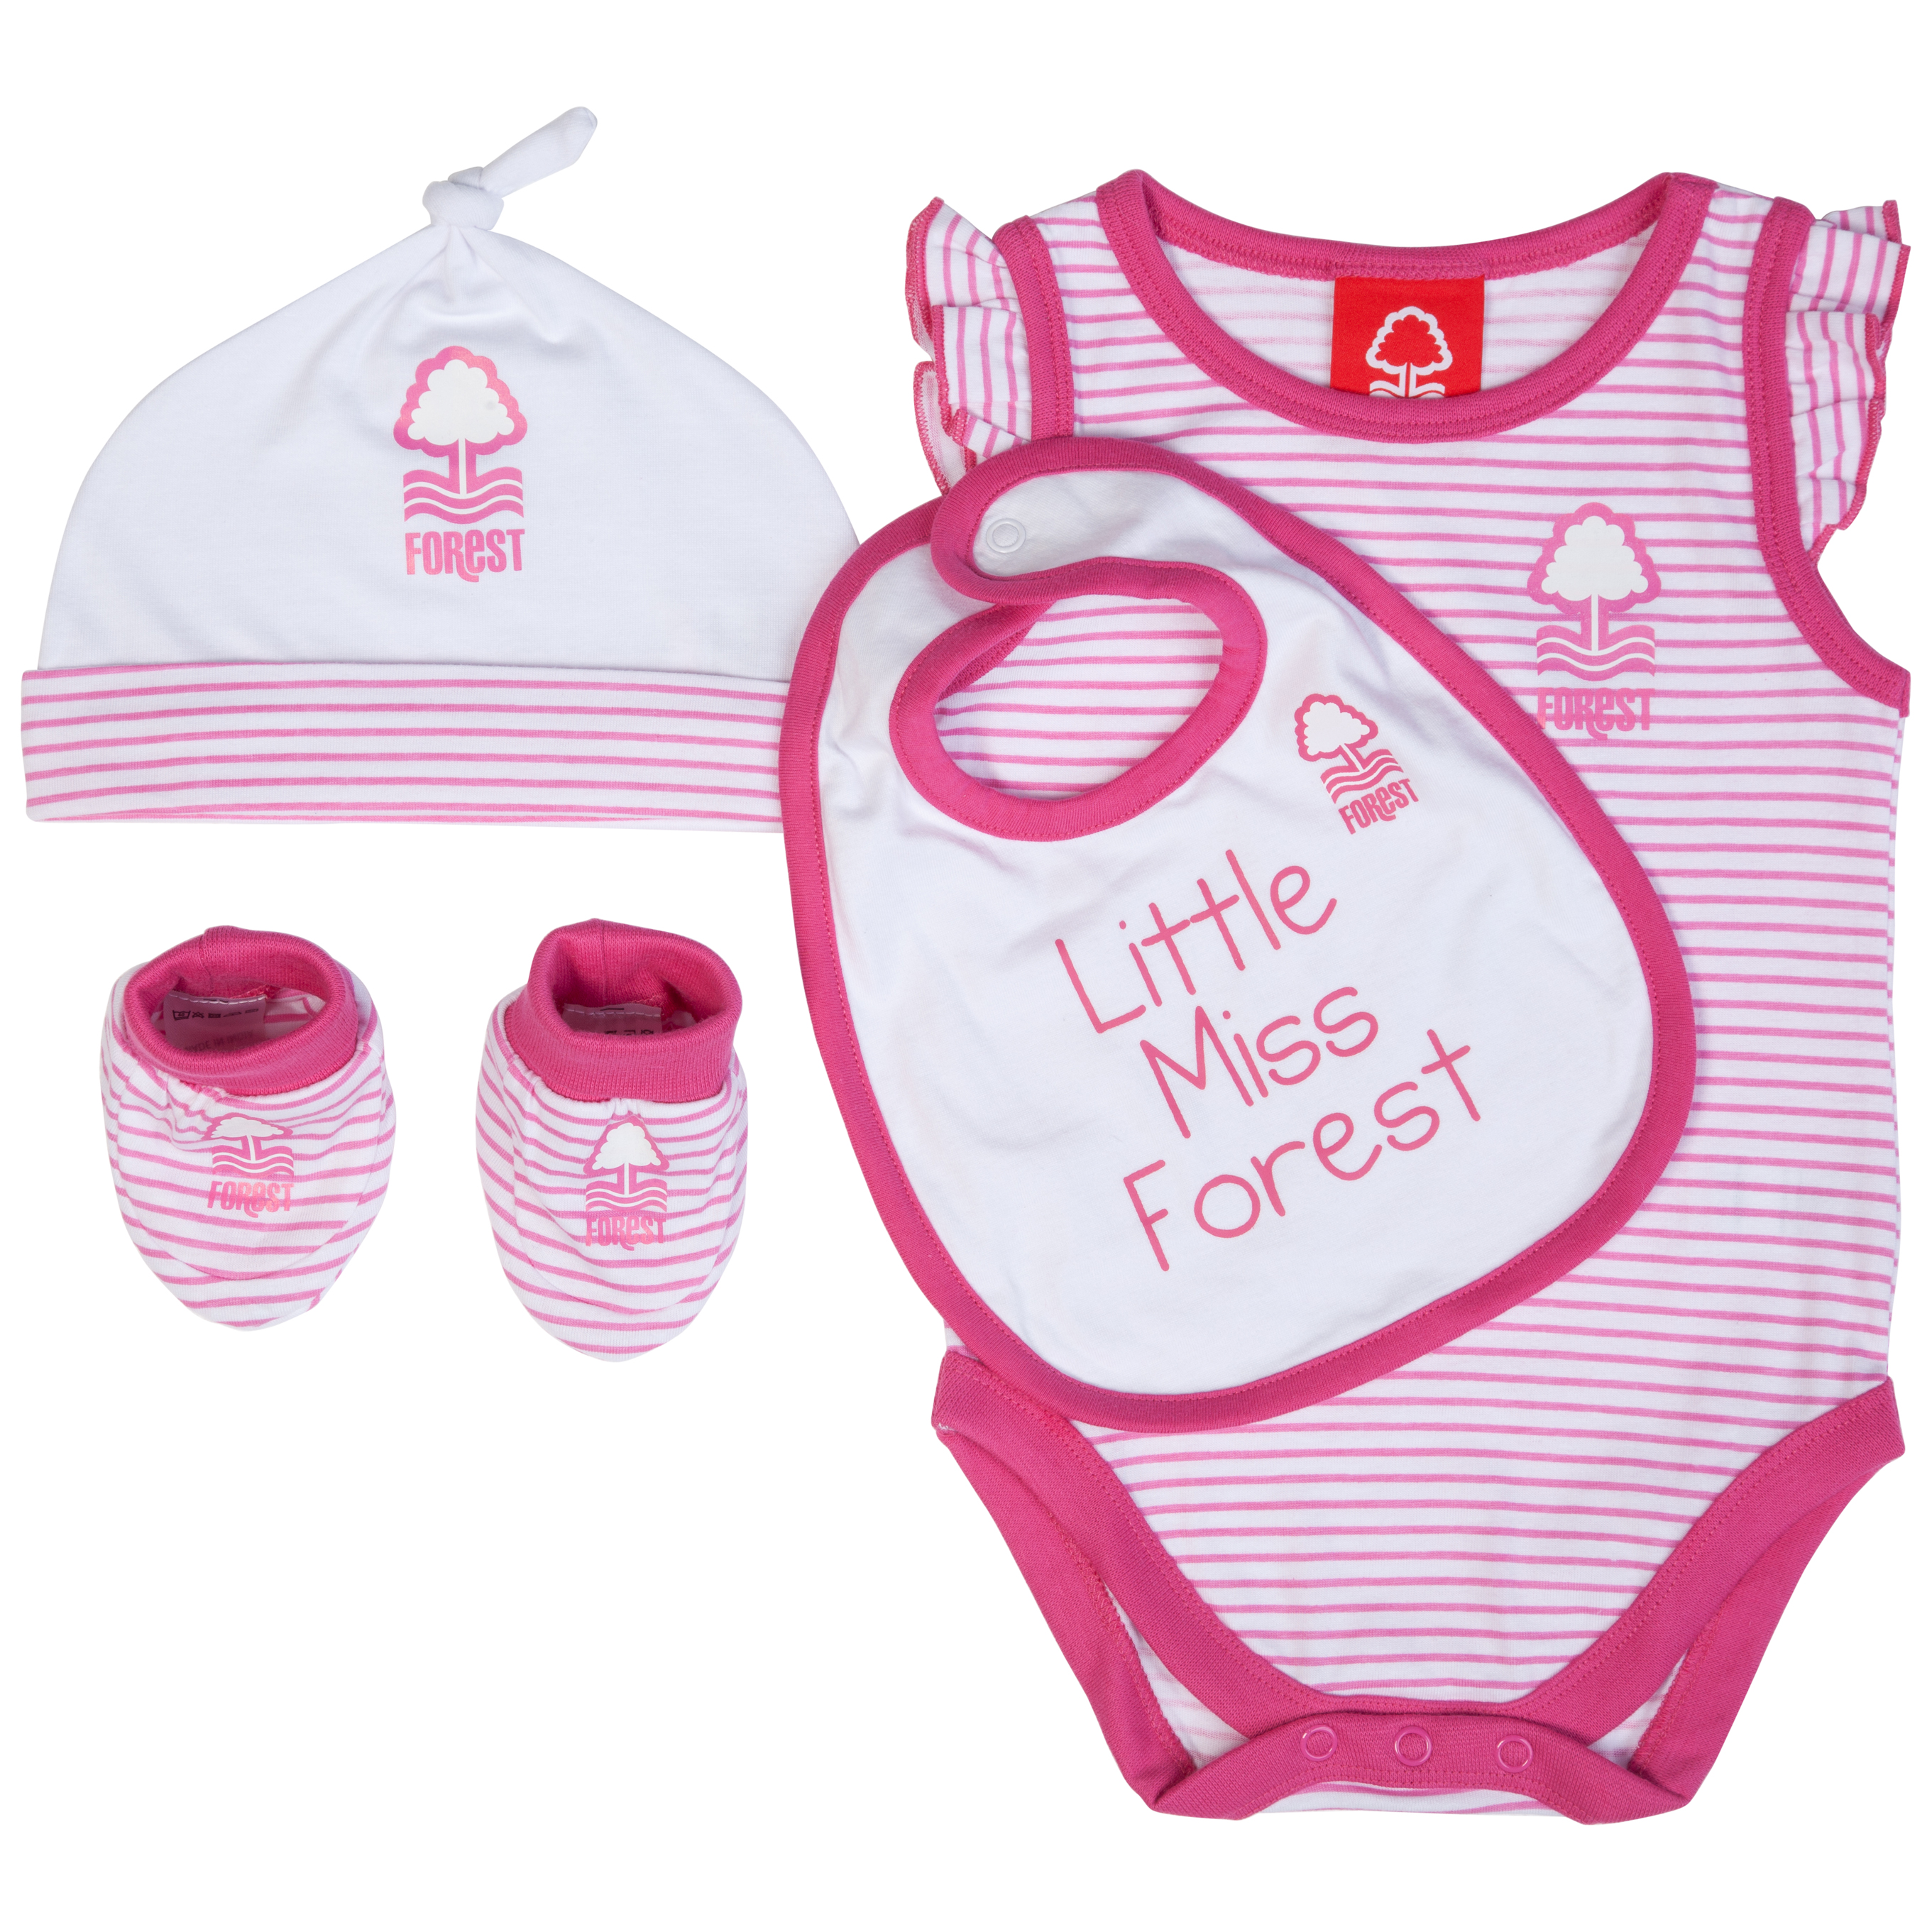 Nottingham Forest 4 Piece Gift Set - White/Pink - Baby